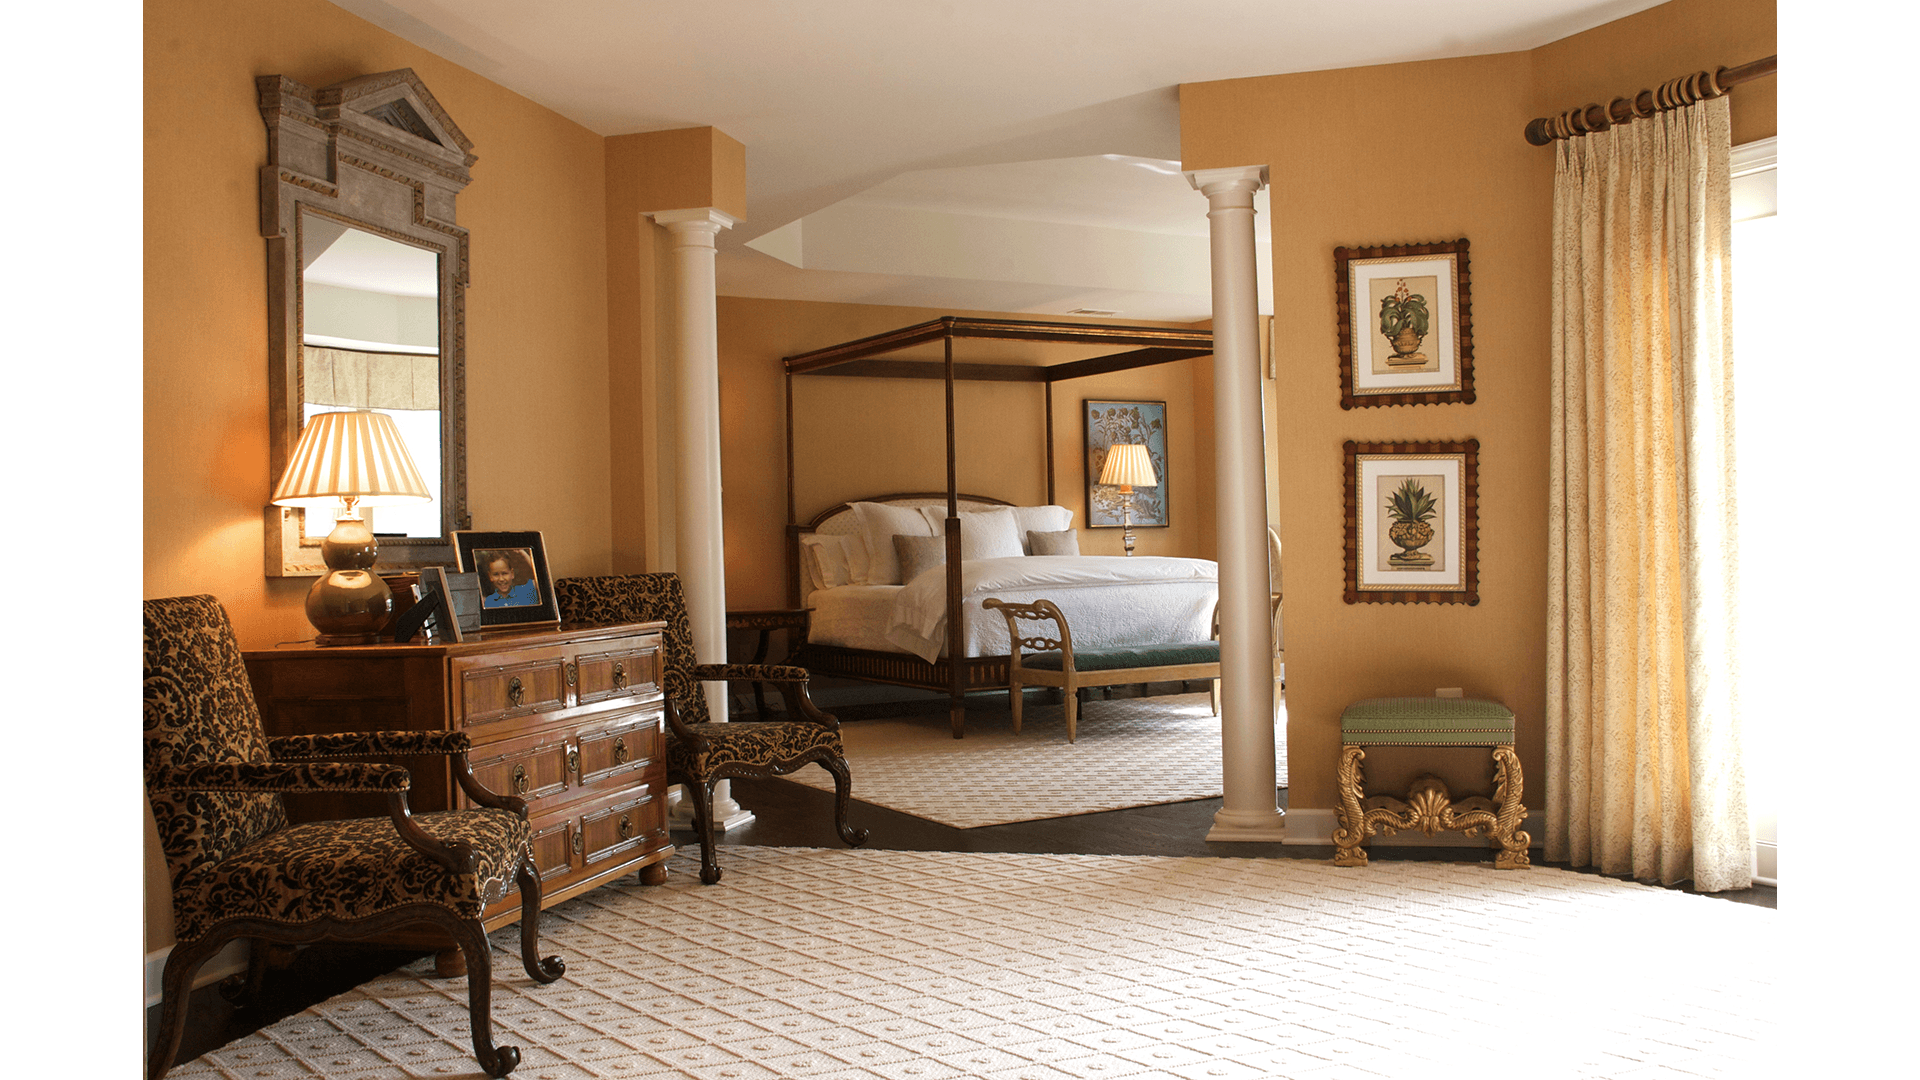 Grovemont Wentworth - Owner's Bedroom